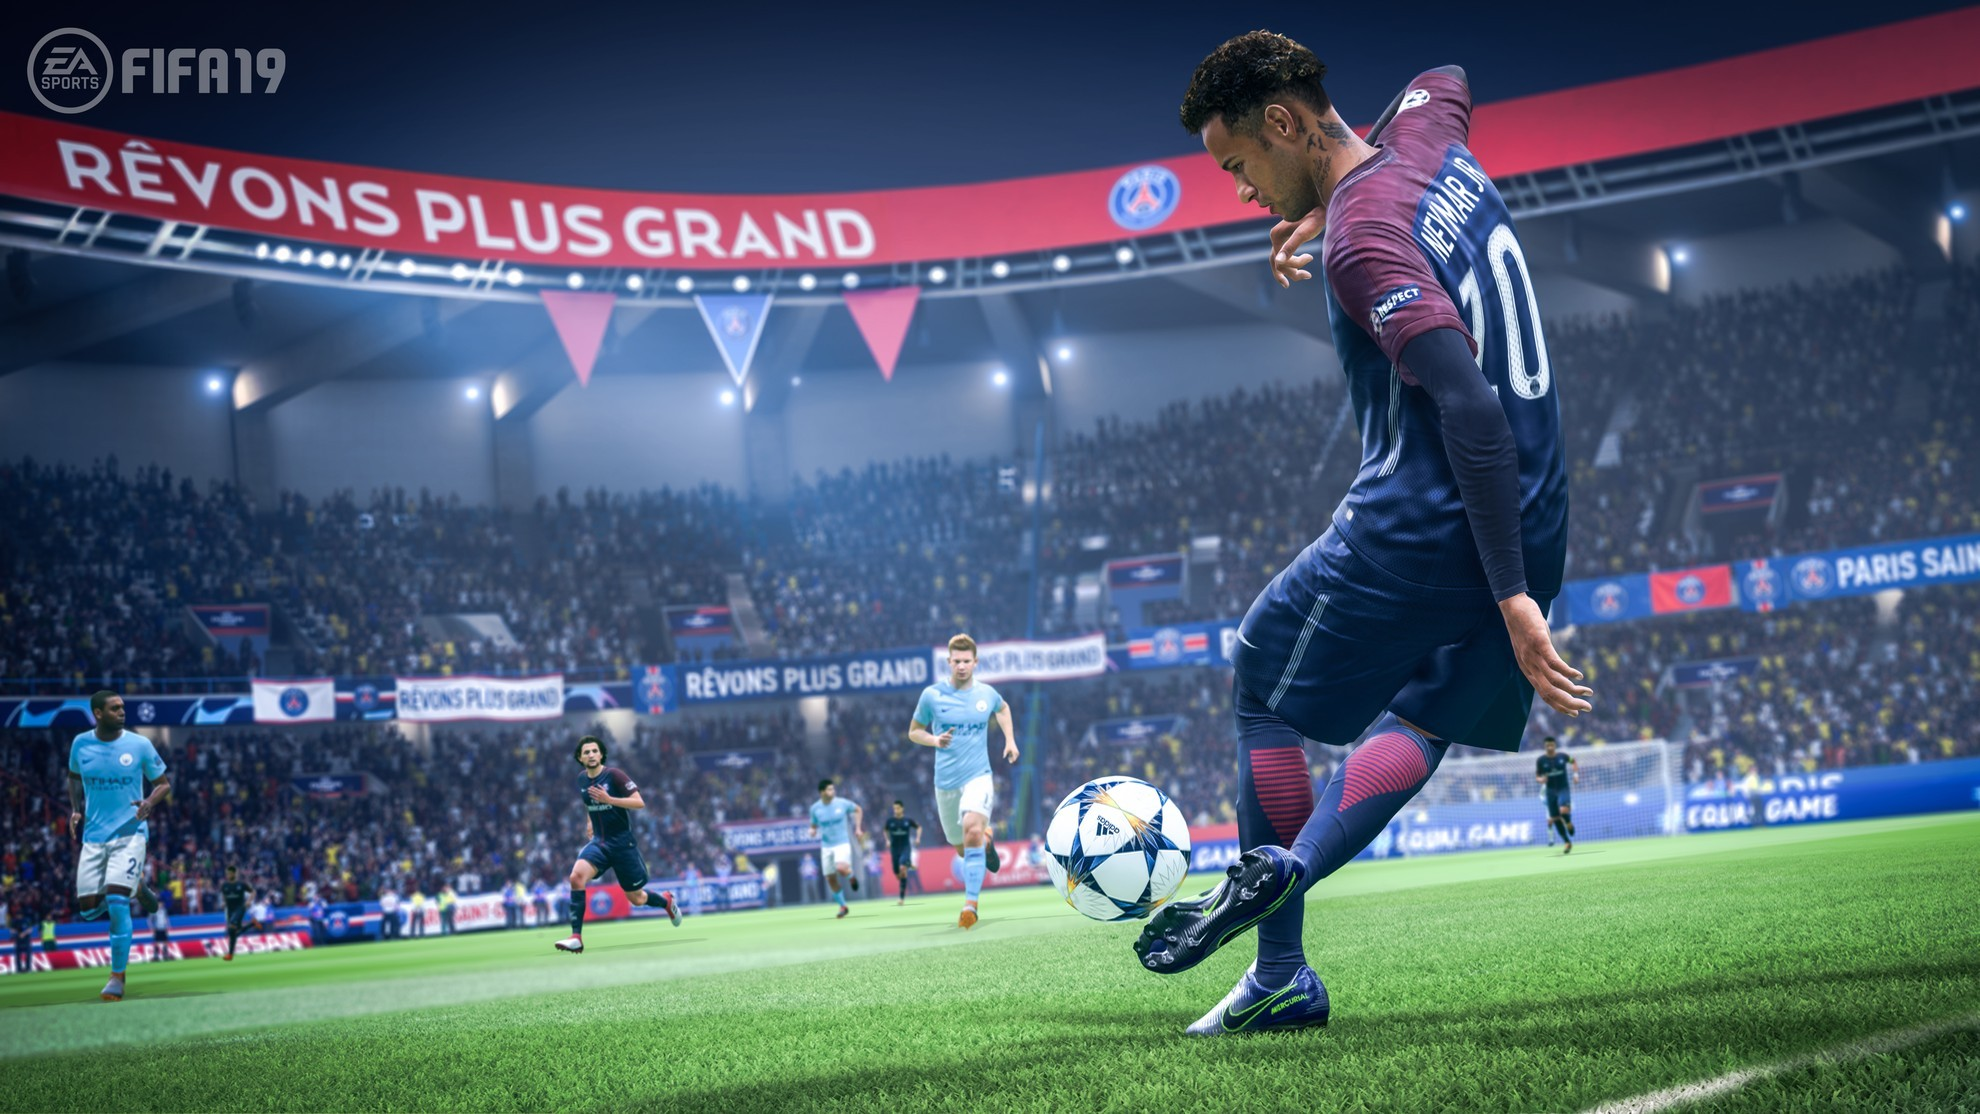 FIFA 19 PC System Requirements Are Very Accesible